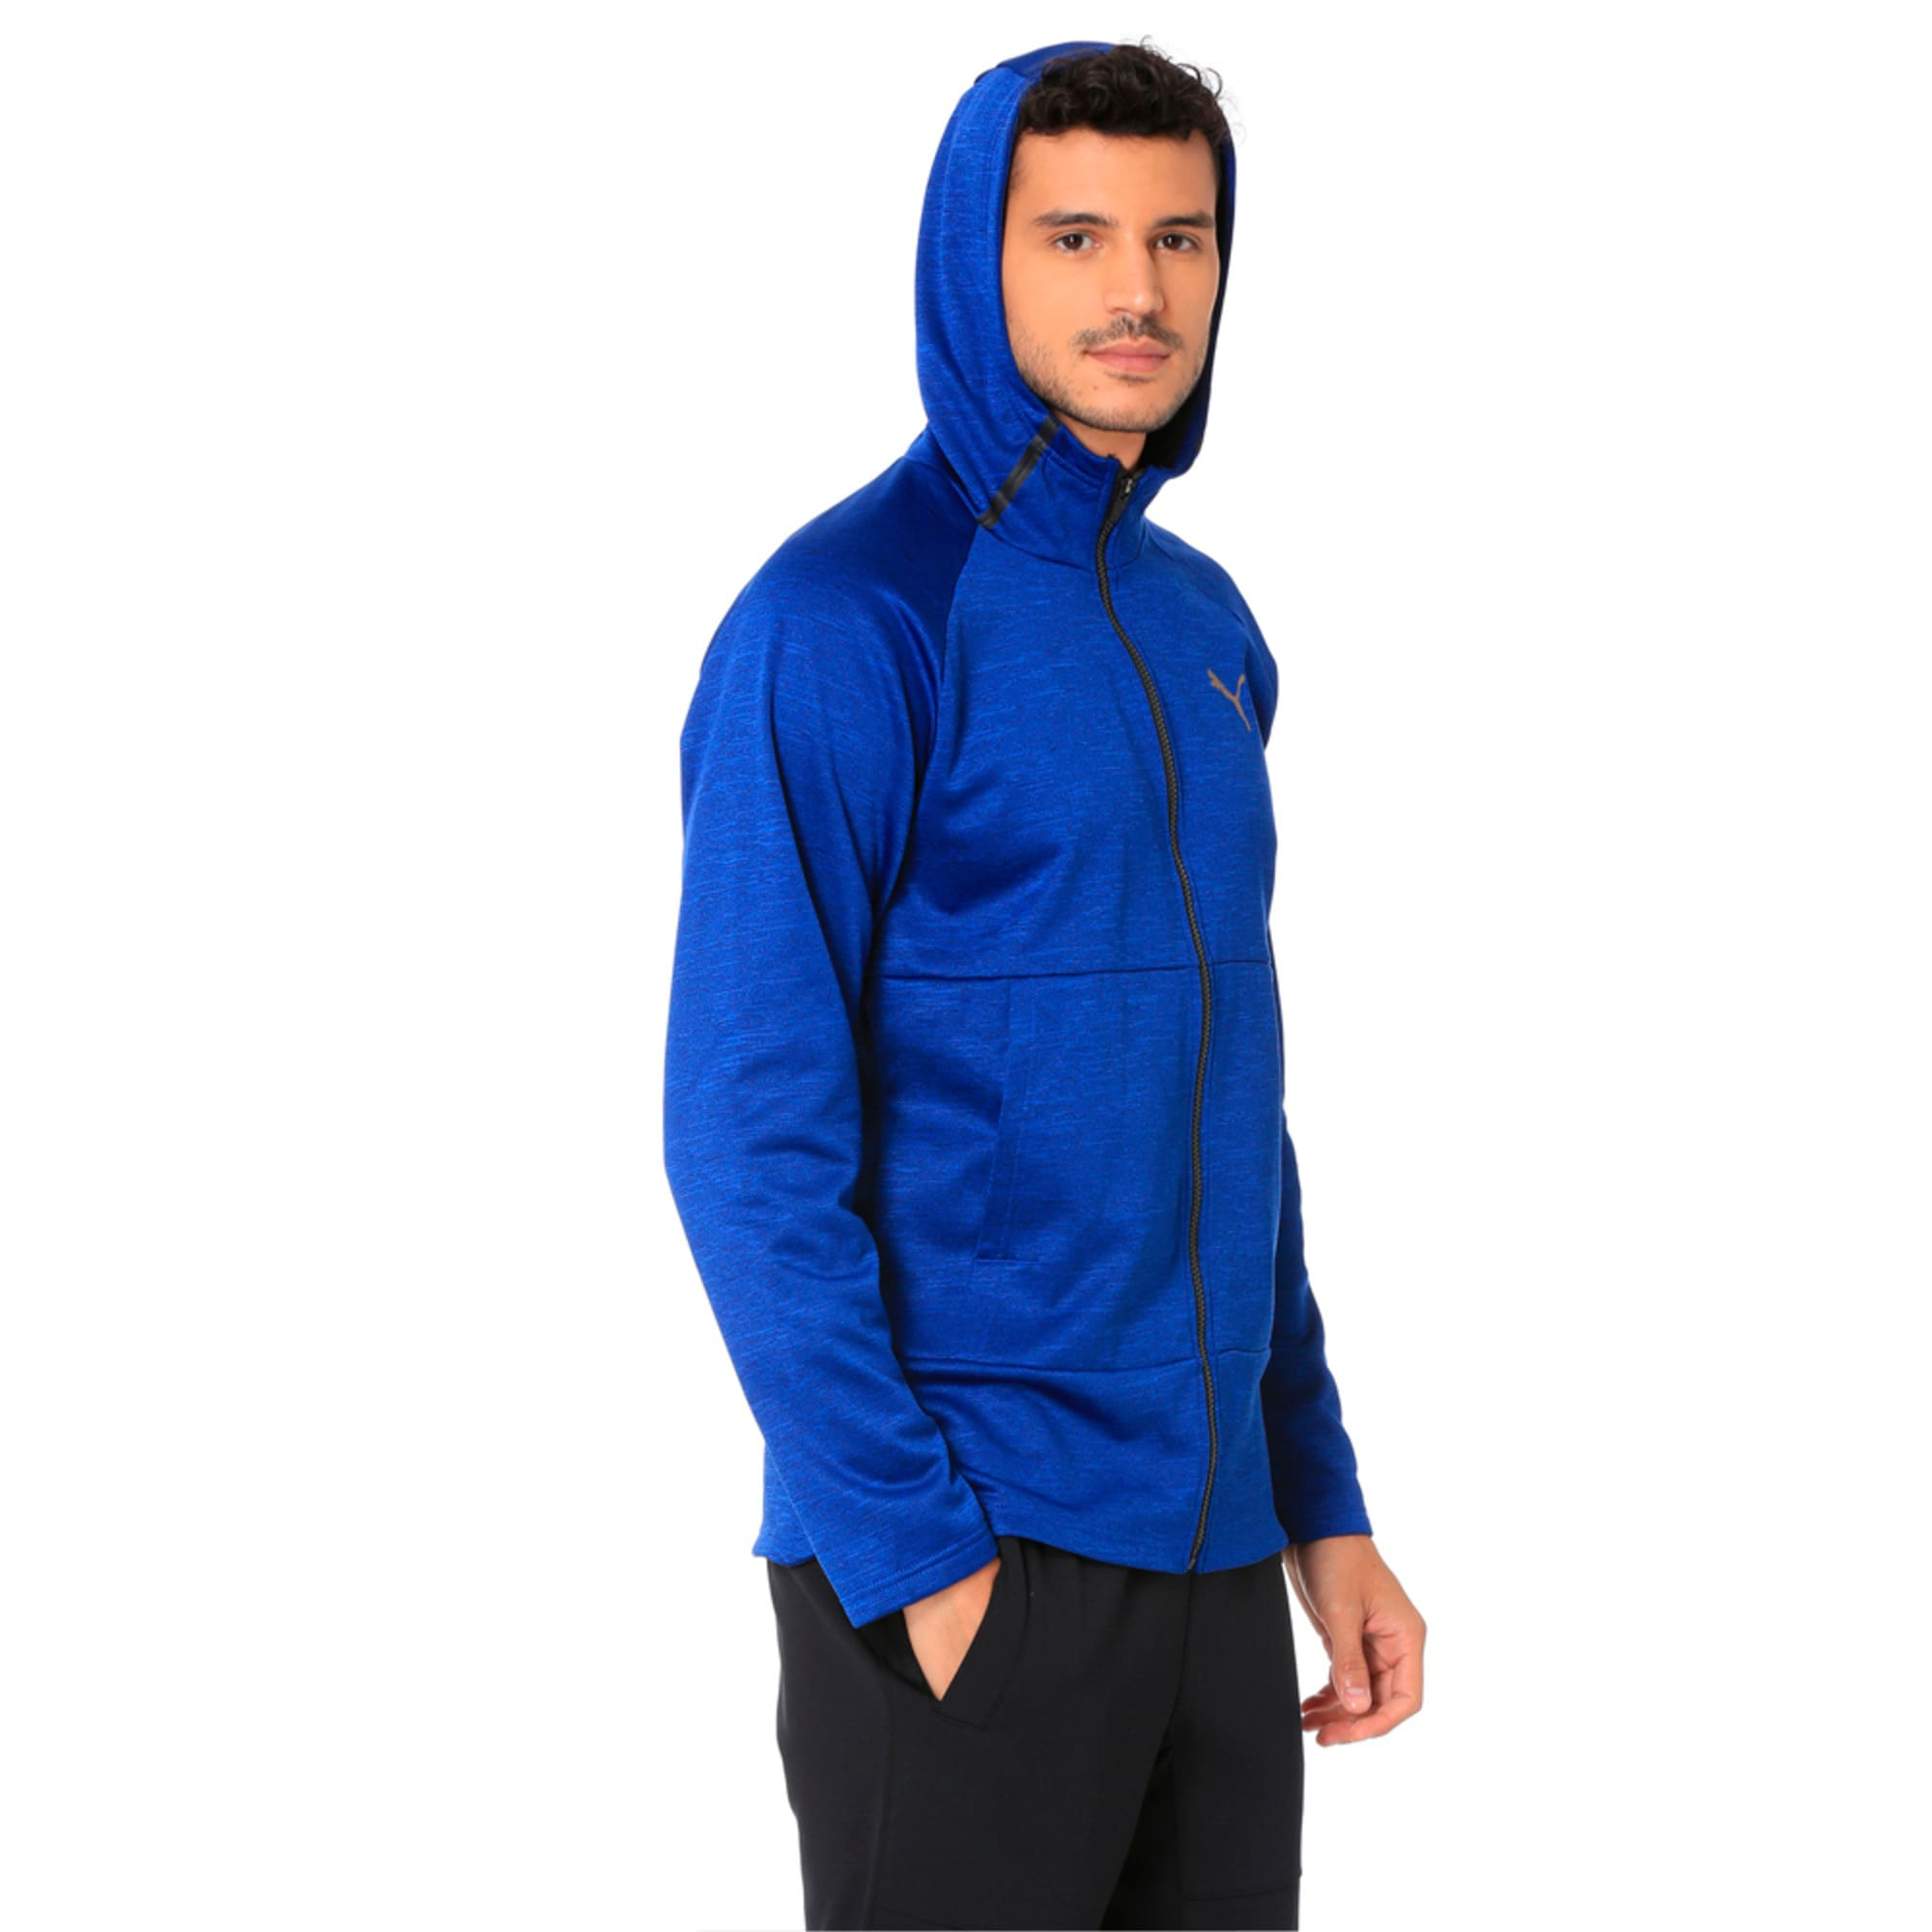 Thumbnail 2 of Q4 BND Tech Protect Jacket Puma Black He, Sodalite Blue Heather, medium-IND